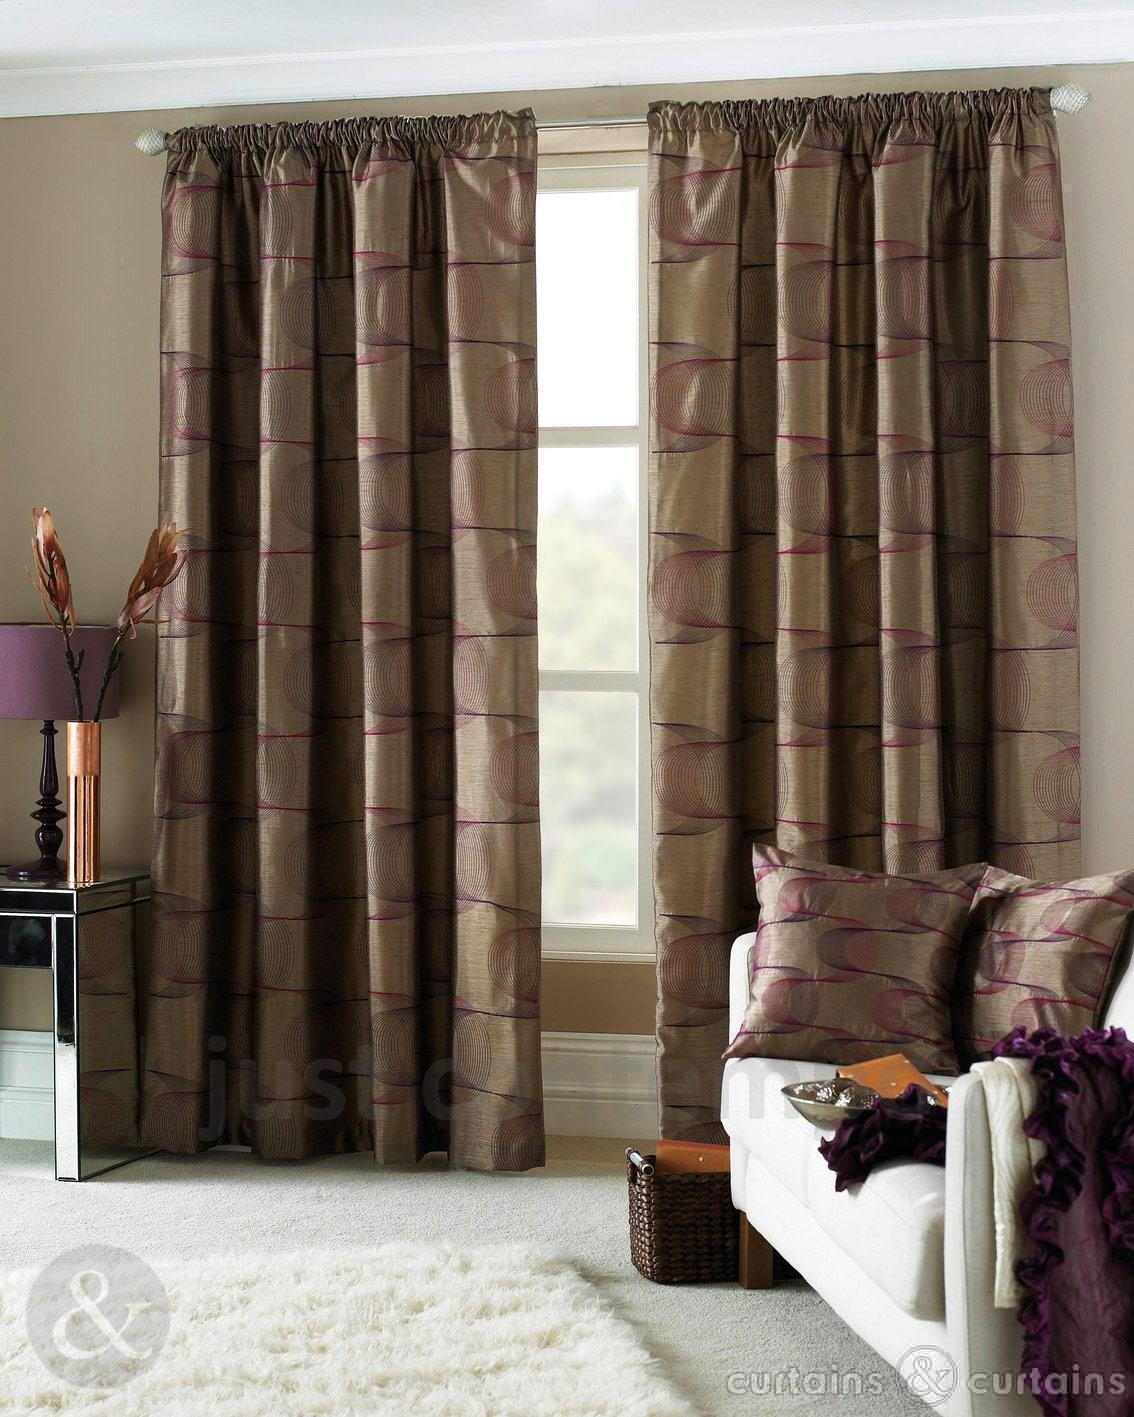 Extra Long Thermal Curtains Uk Best Curtains 2017 Pertaining To Extra Long Thermal Curtains (View 7 of 15)